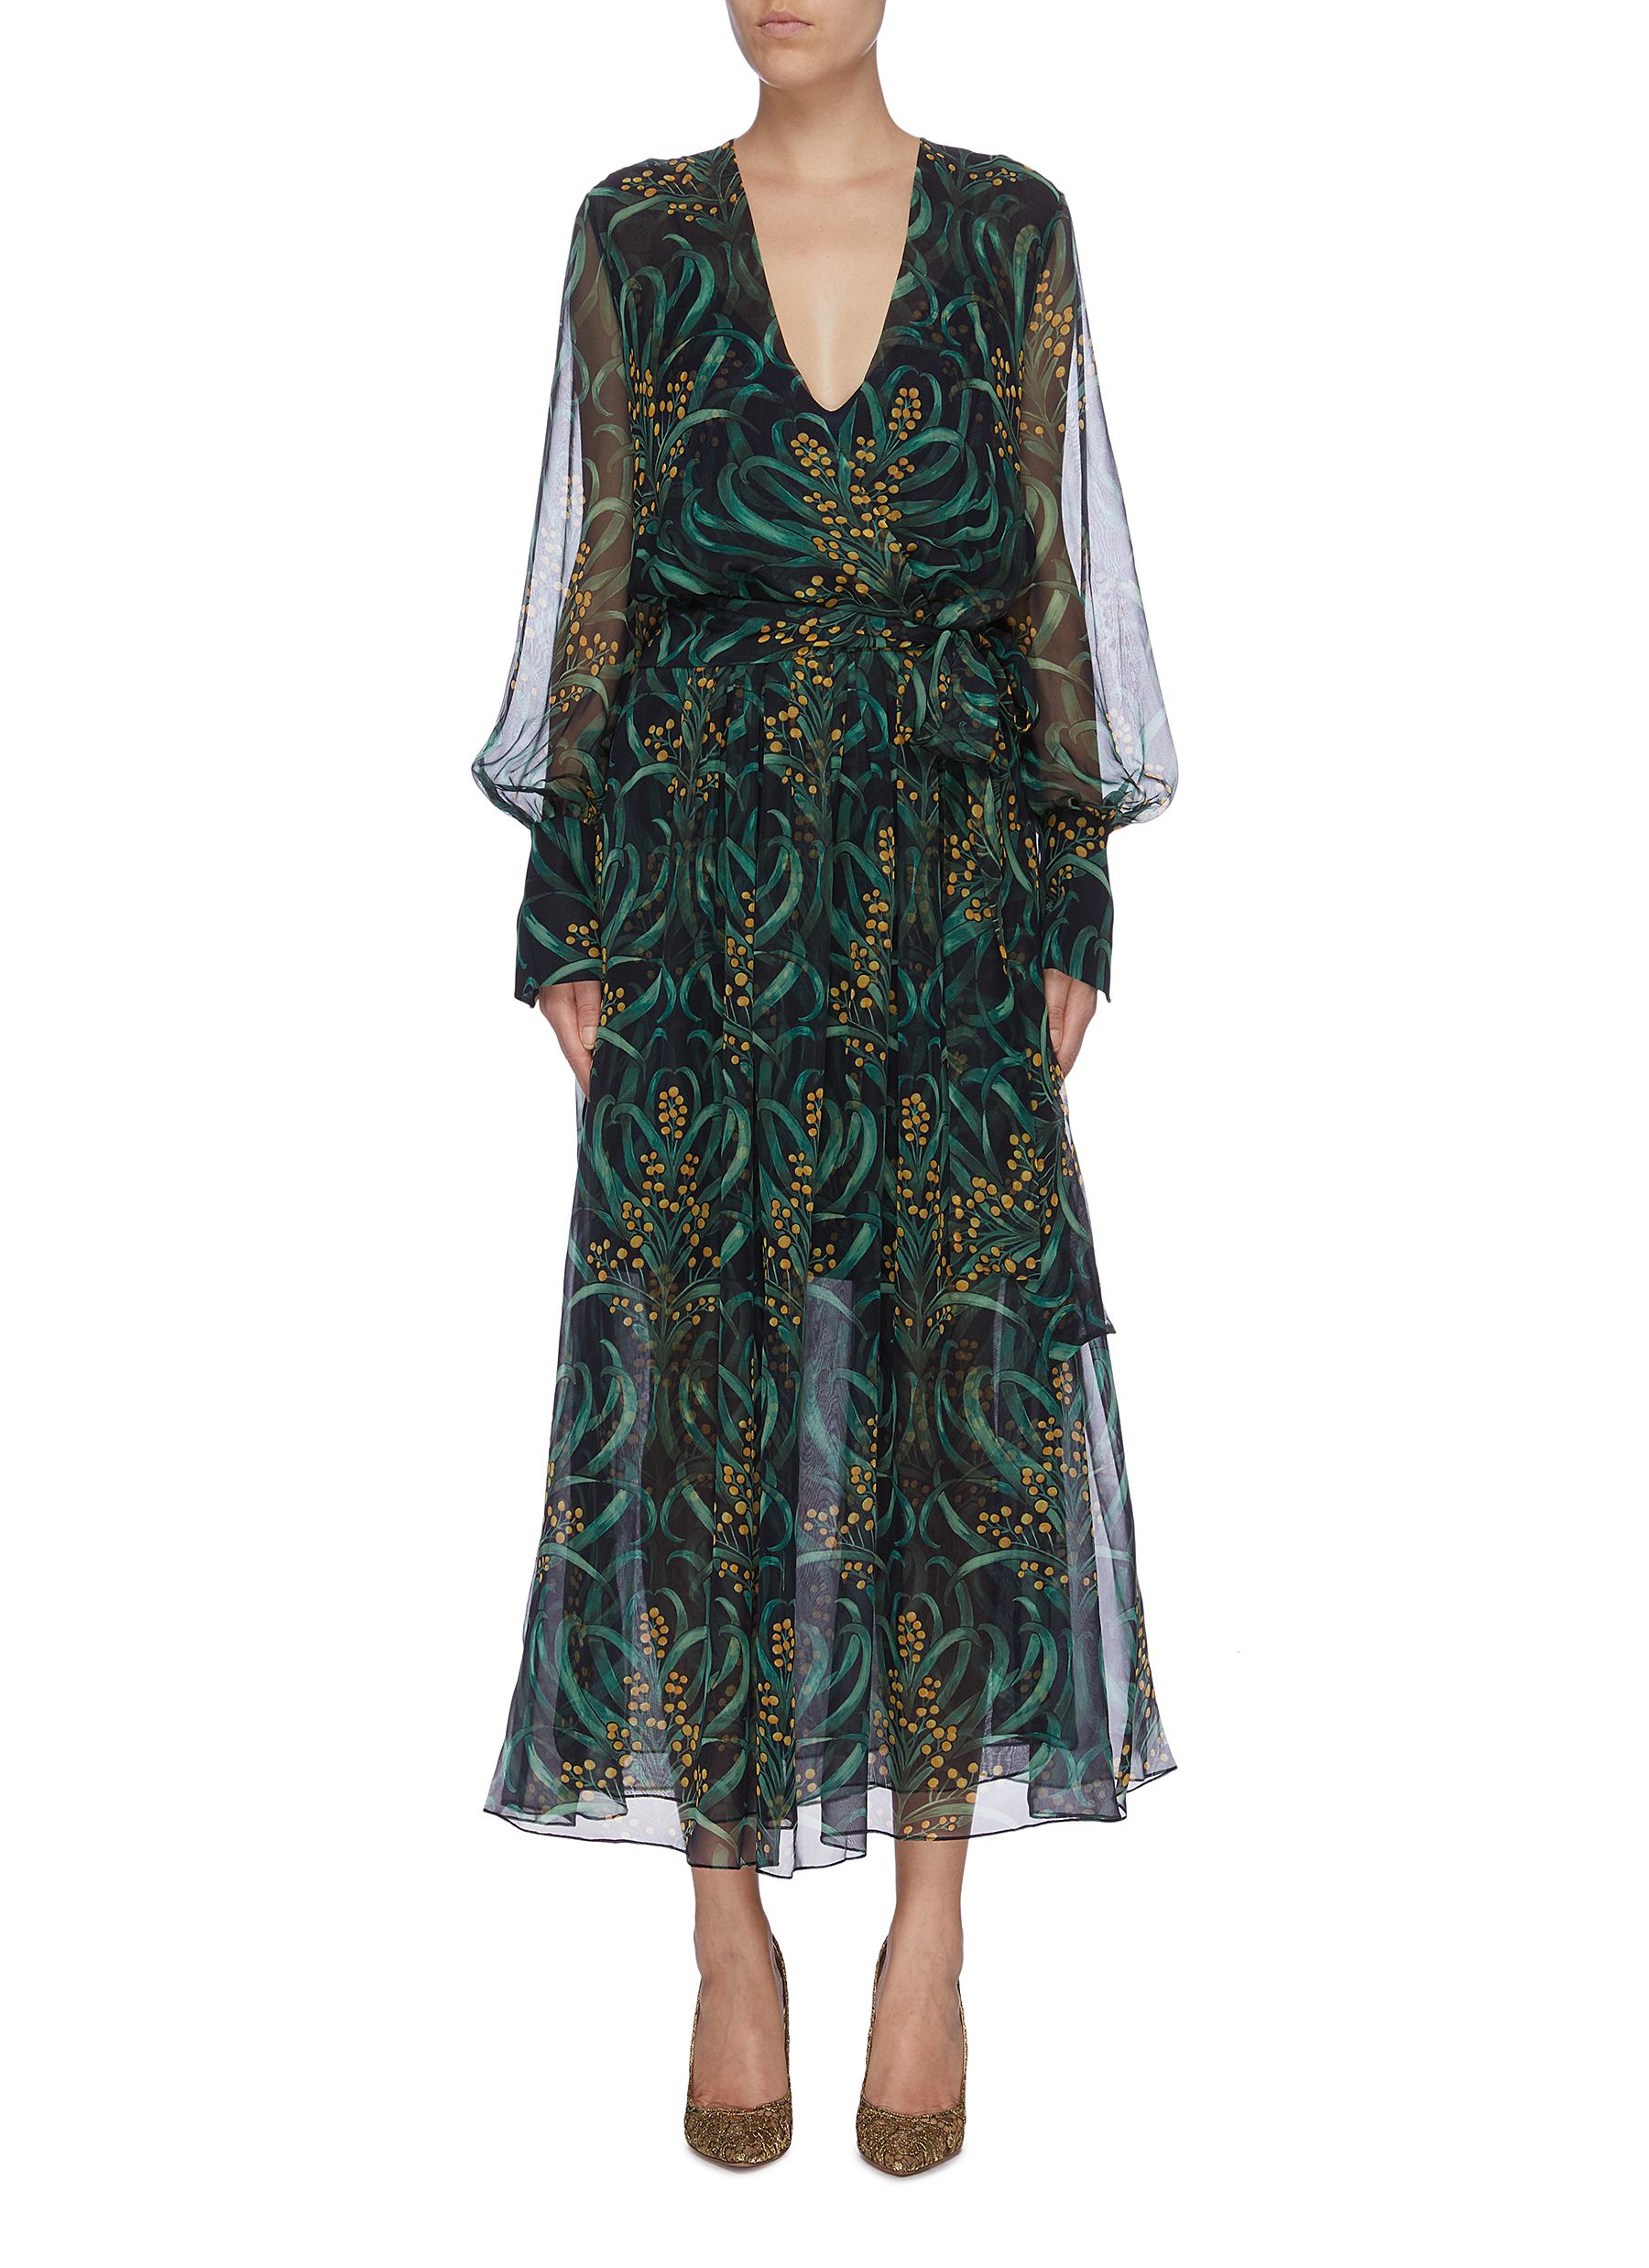 Leaf print silk chiffon dress by Oscar De La Renta